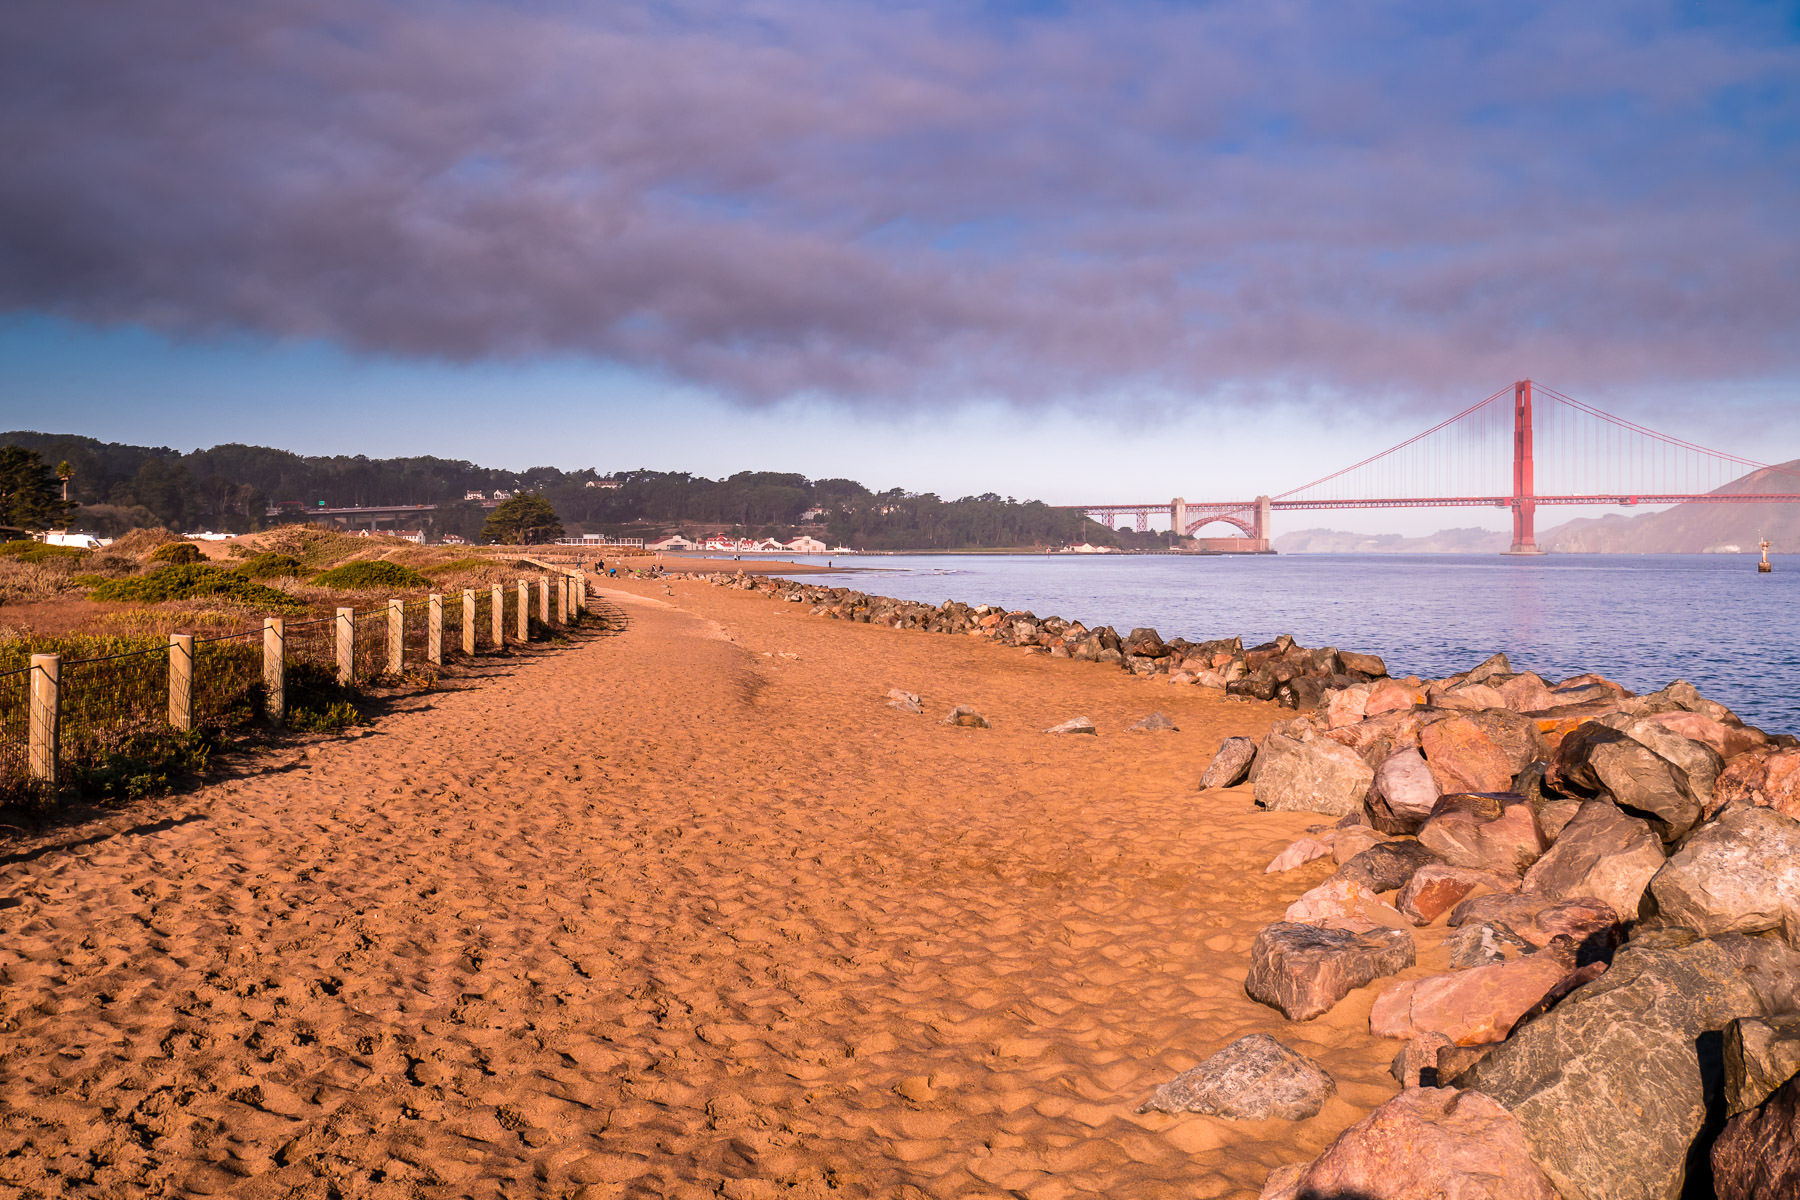 The morning sun lights the sandy beach at San Francisco's Crissy Field.